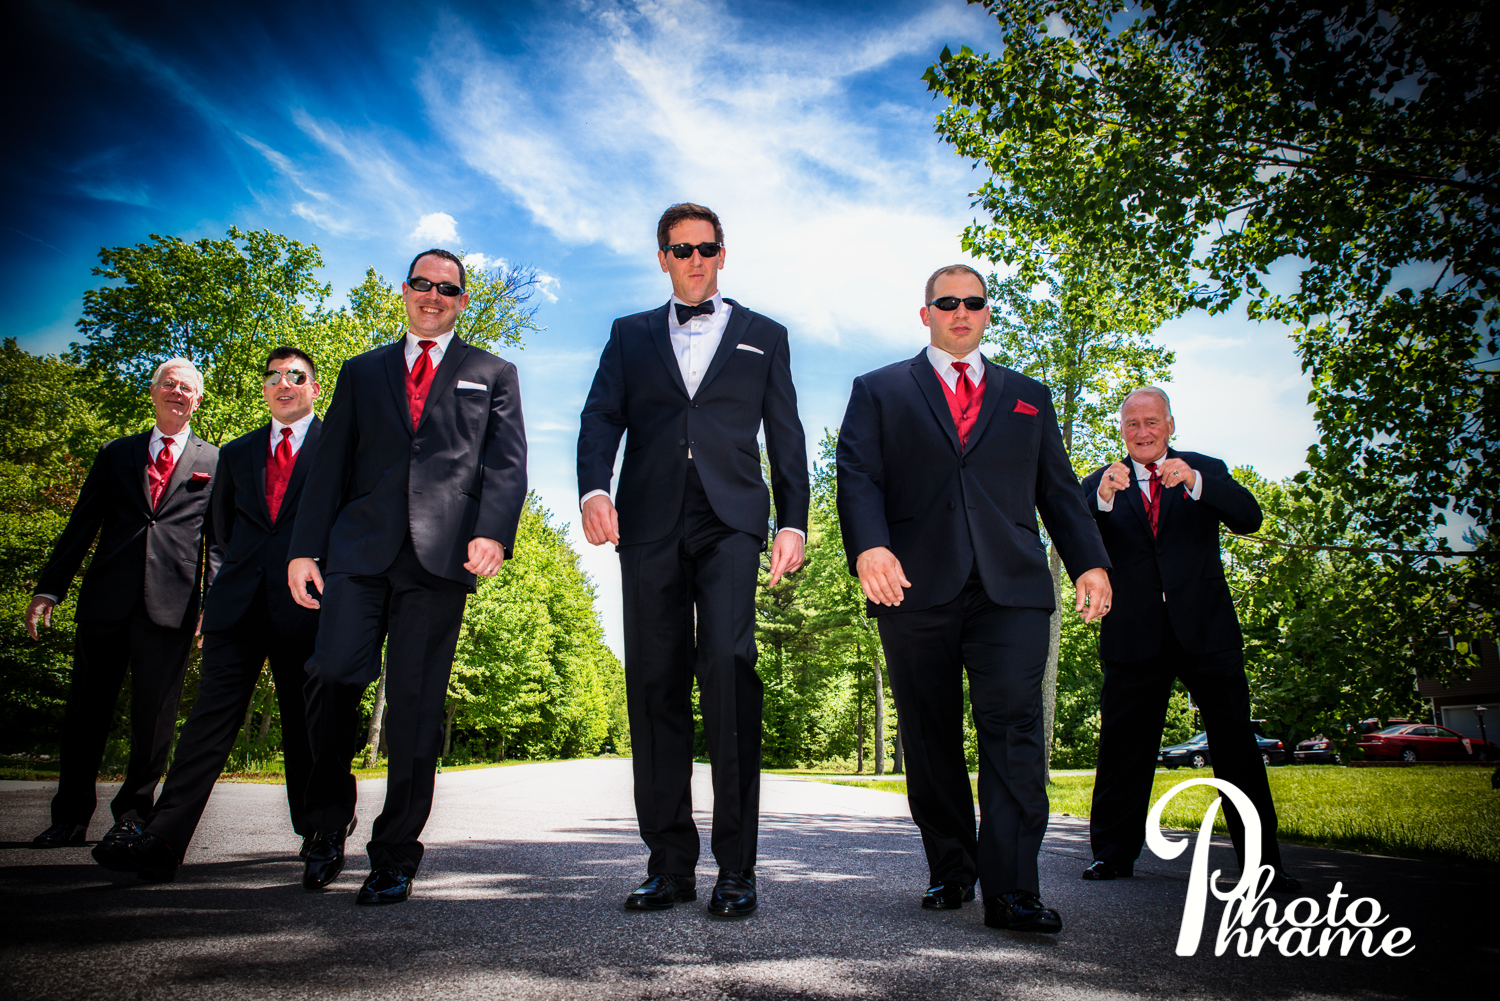 James Bond and his posse, Photo Phrame Photography, Saratoga, NY